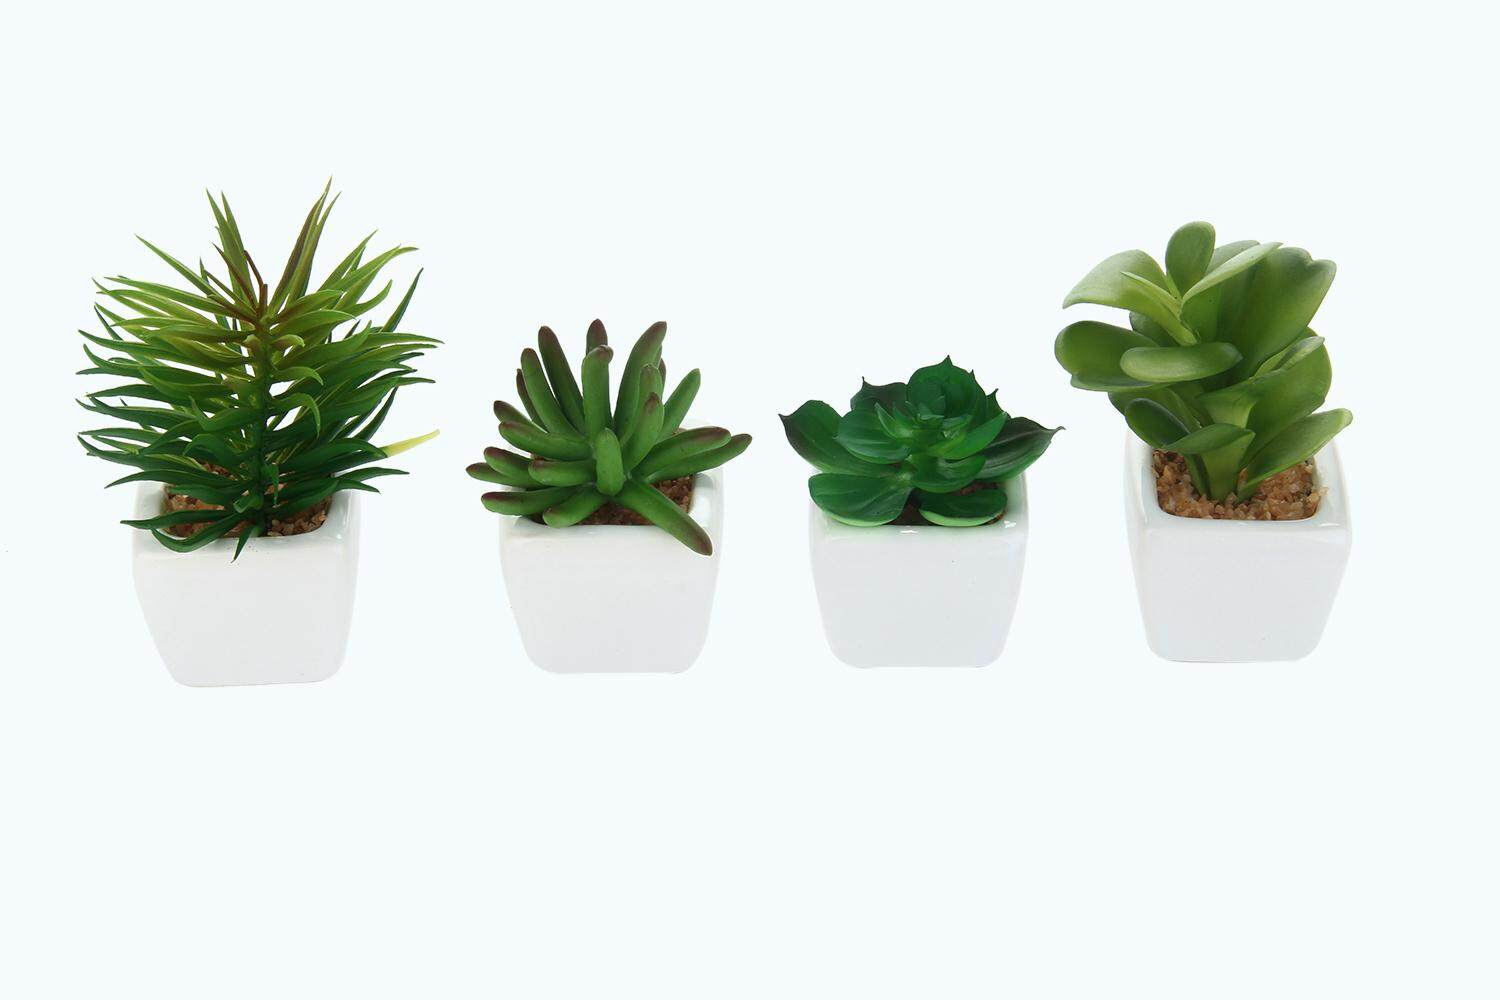 Womdee Set Of 4 Modern White Ceramic Mini Potted Artificial Succulent Plants - intl